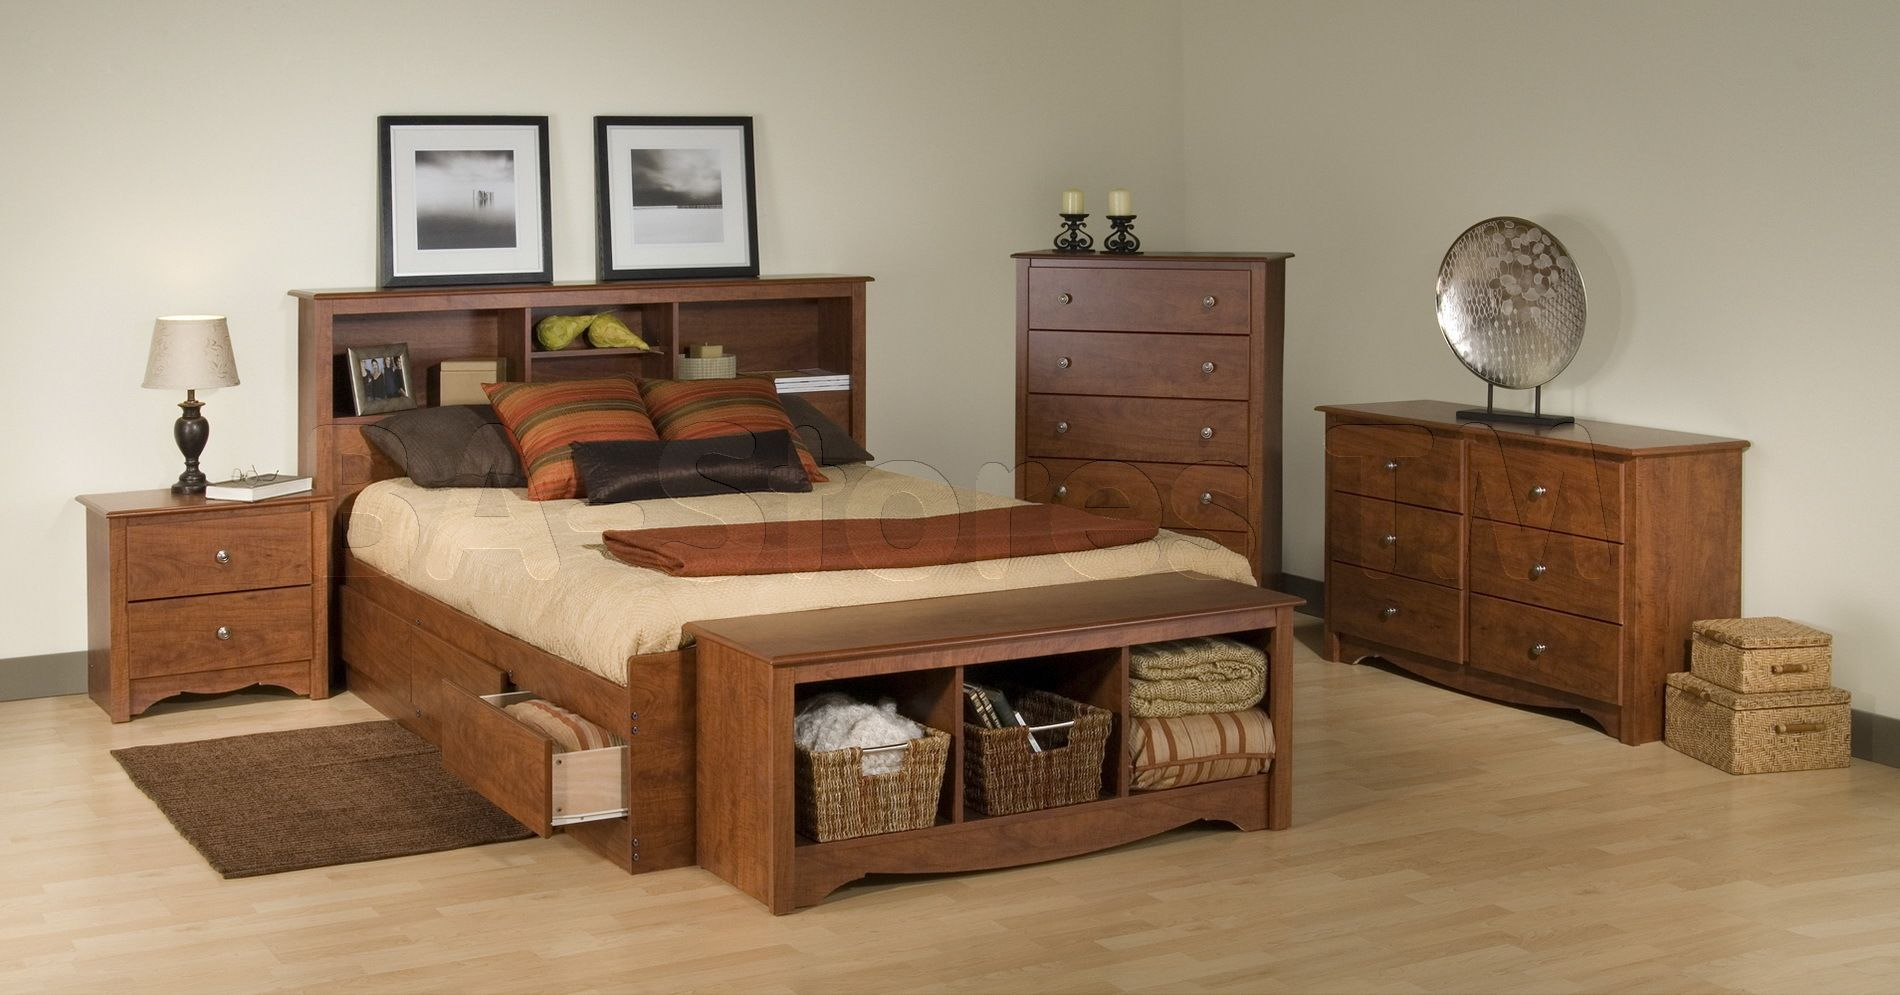 Prepac Monterey 4 Pc Double Size Bedroom Set In Cherry Bed Two